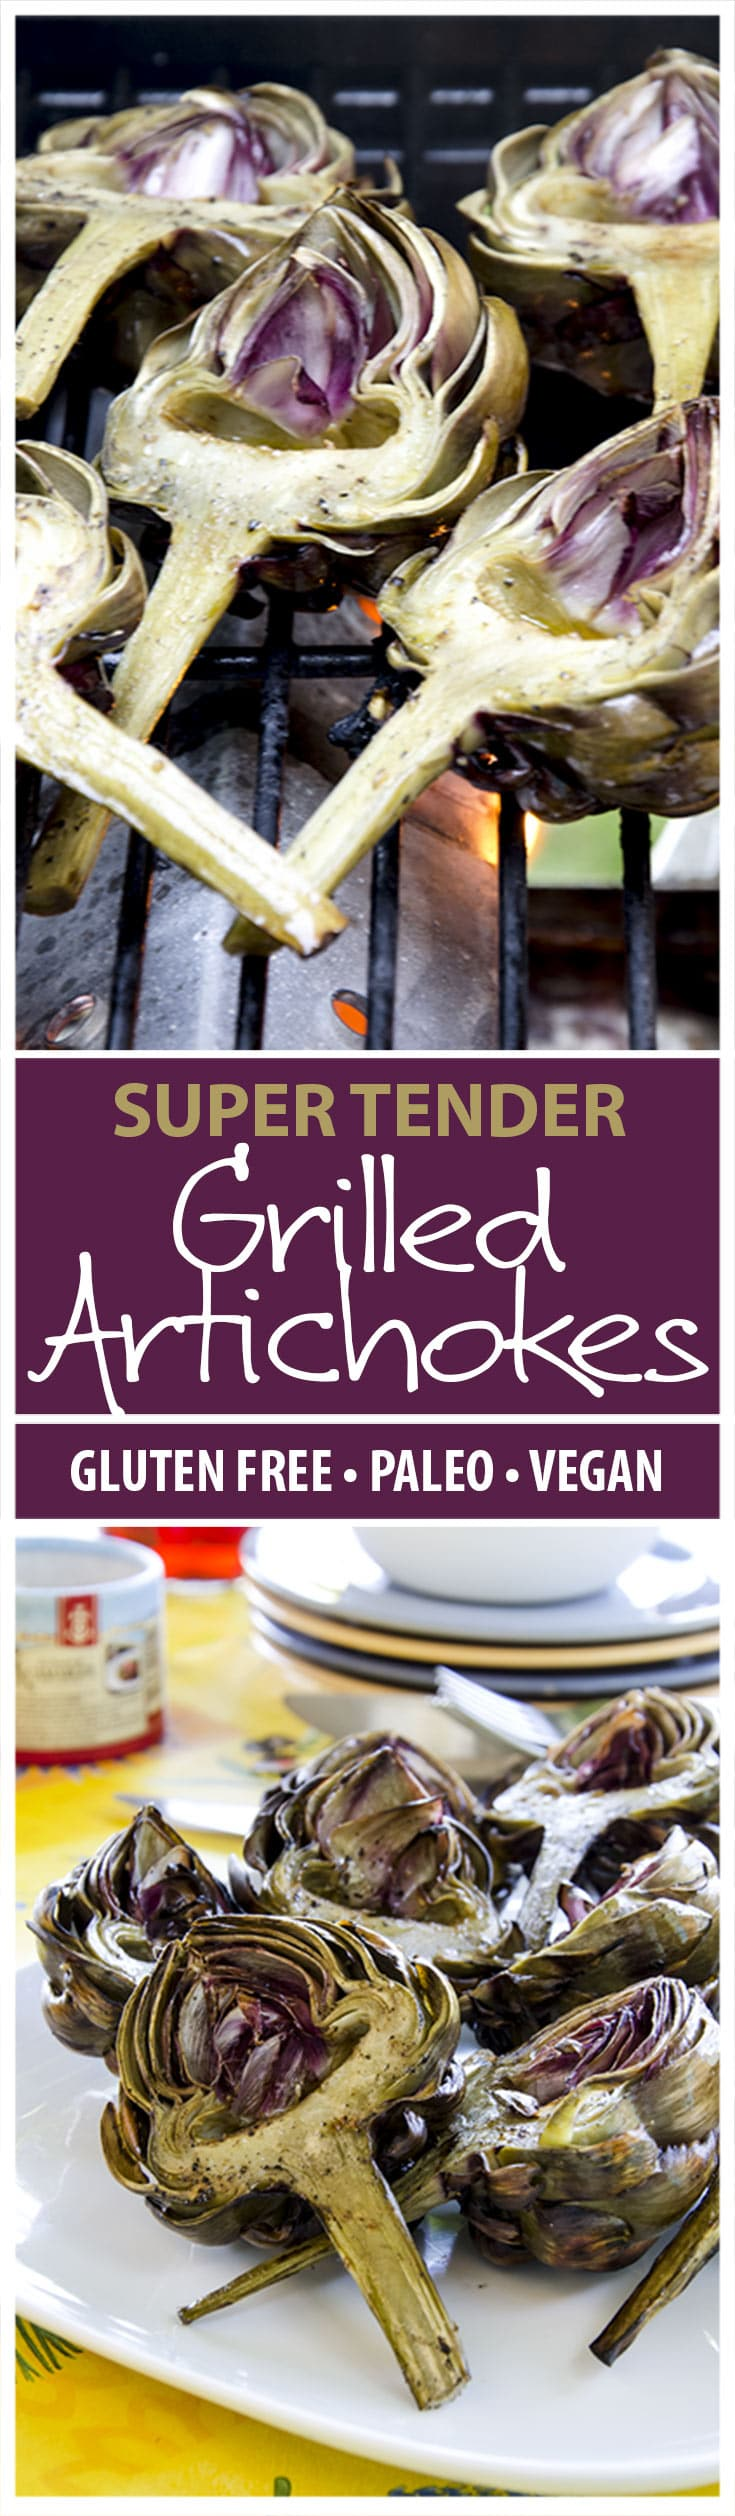 Learn how to make the most tender and delicious grilled artichokes with this recipe. My step-by-step guide will get these delightful artichokes from grill to table in no time flat!